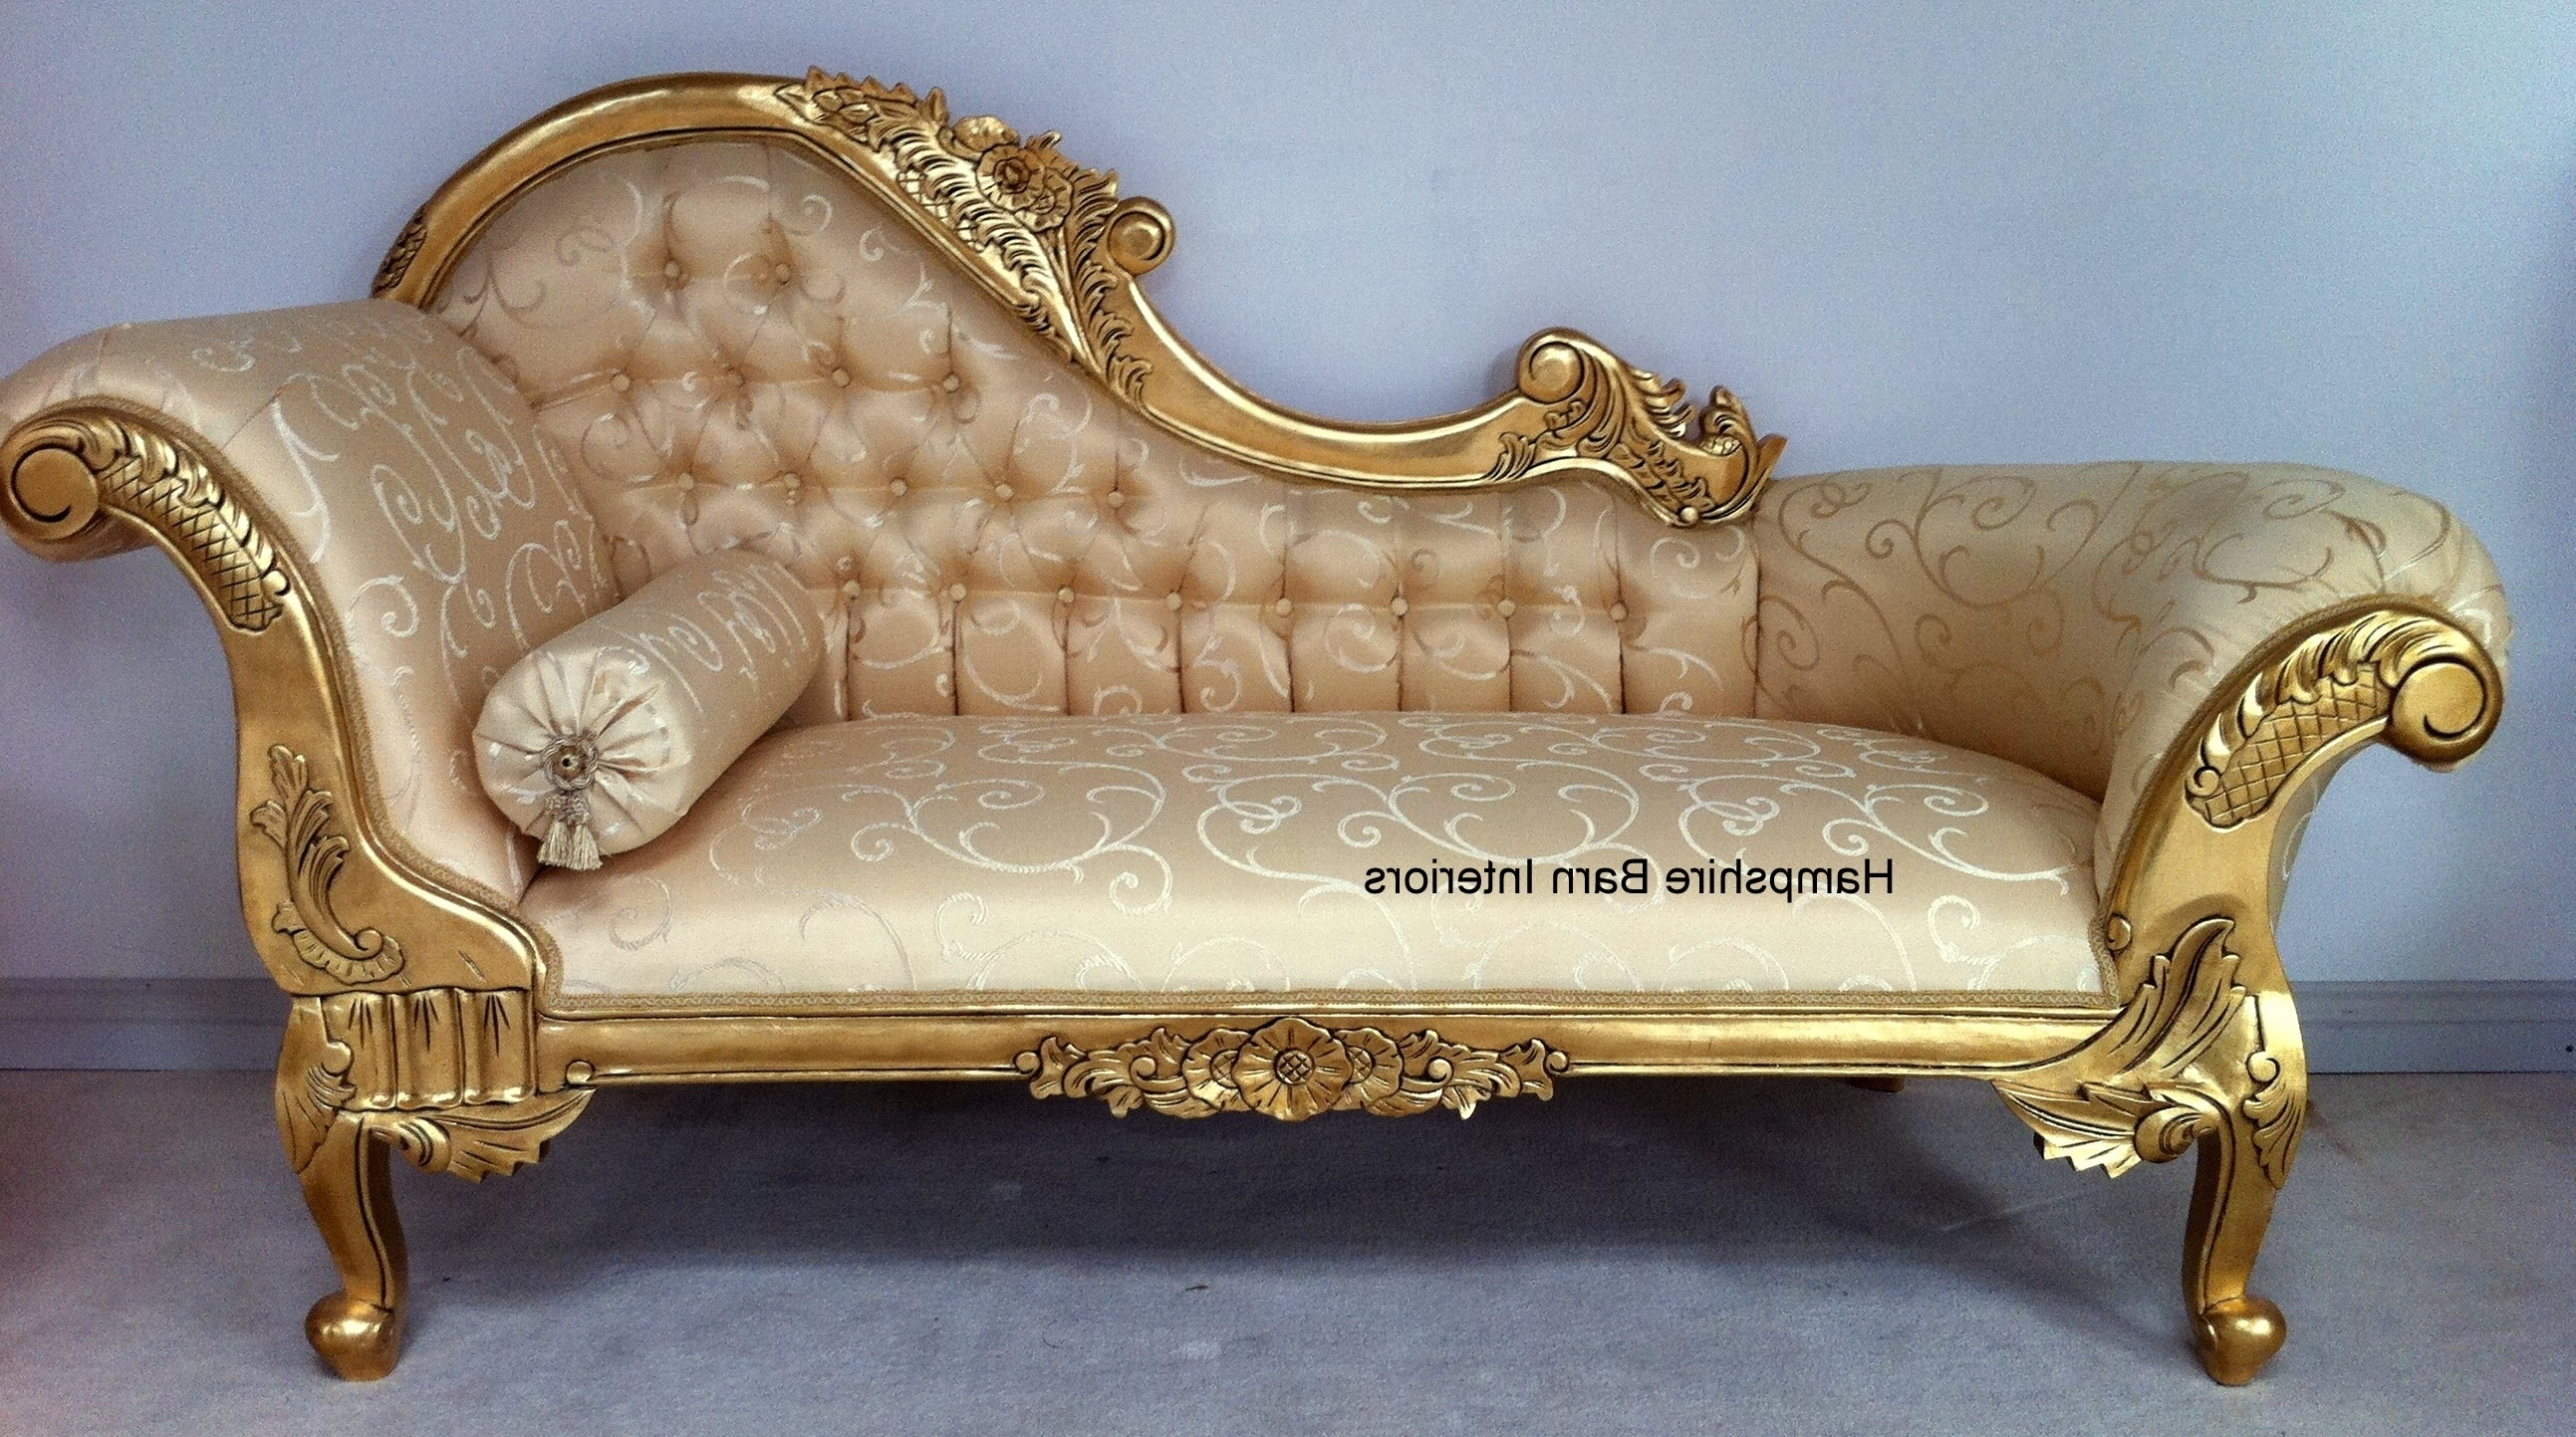 Preferred Cream And Gold Colours For Chaise Lounge : 15 Breathtaking Cream Regarding Cream Chaise Lounges (View 11 of 15)